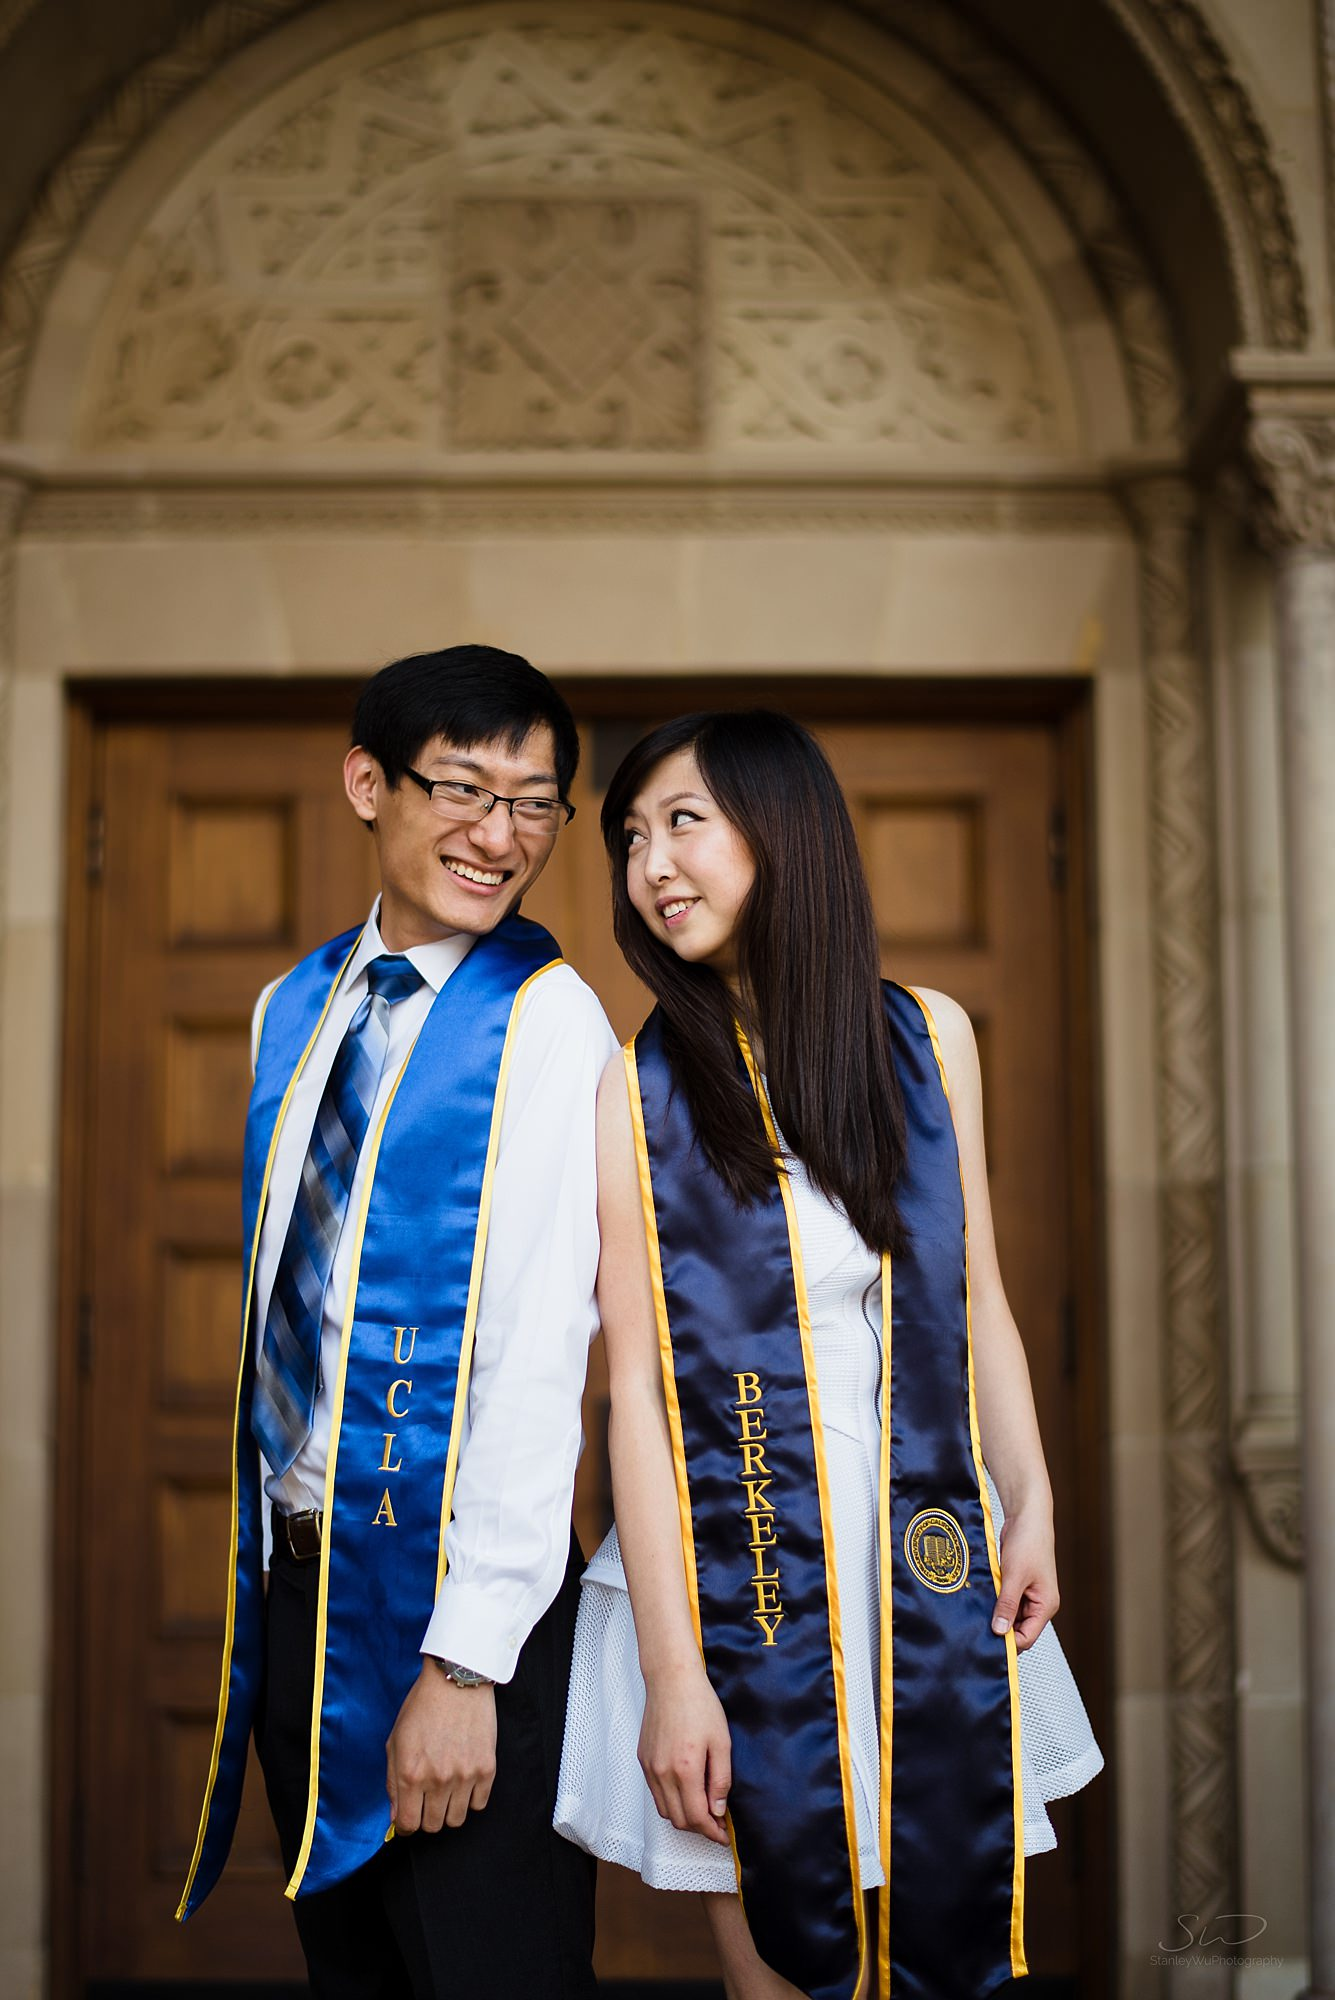 beautiful graduation senior portrait of an asian couple looking at each other at ucla in los angeles